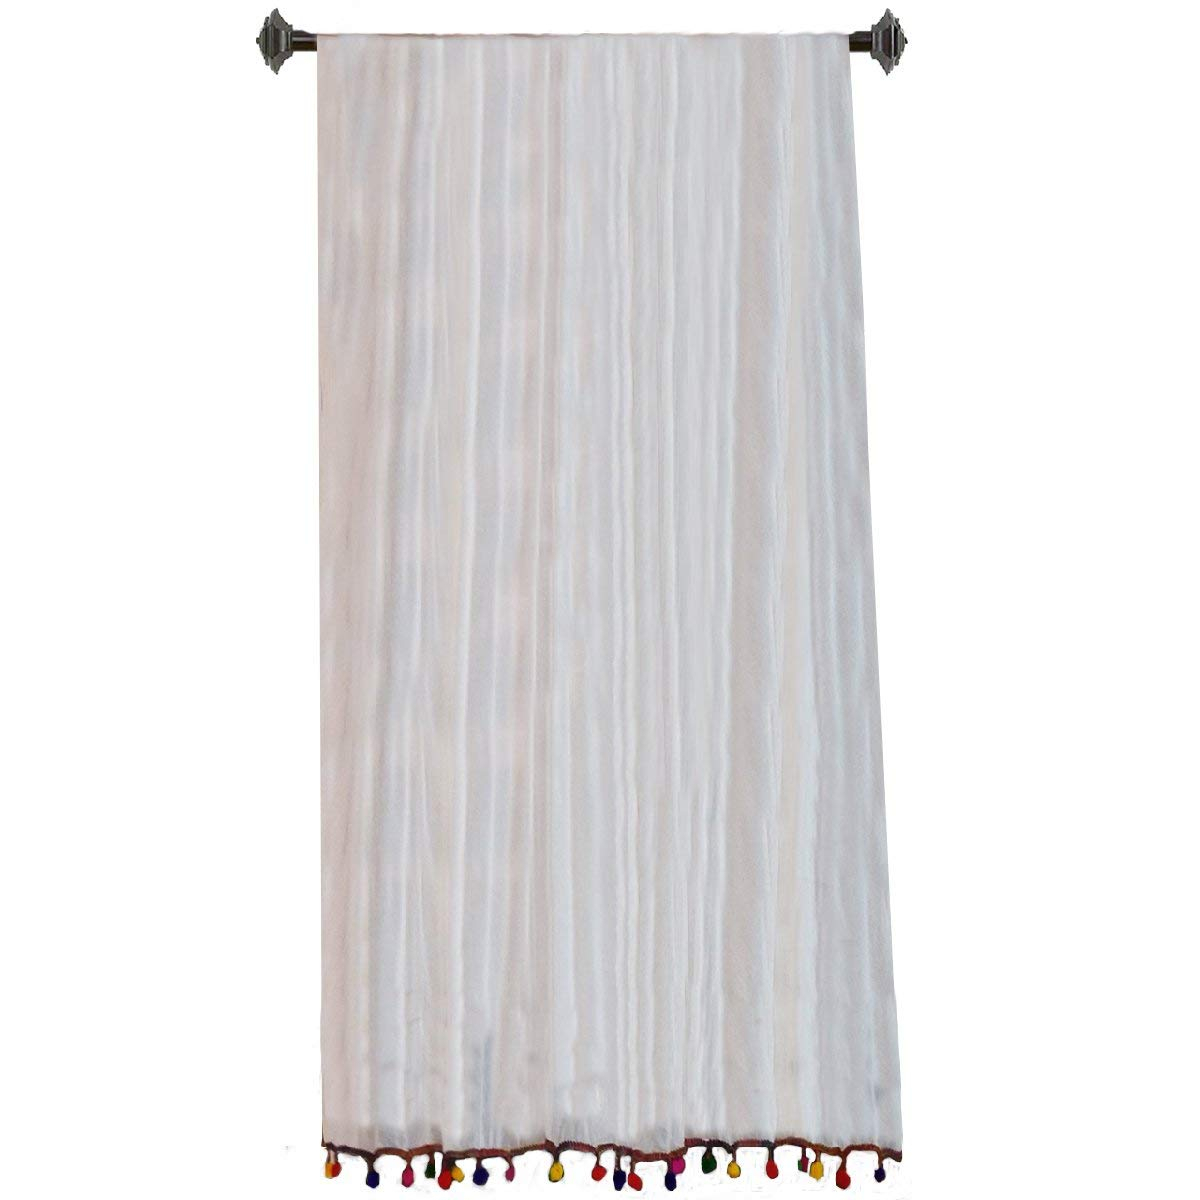 Cheap White Lace Kitchen Curtains, Find White Lace Kitchen Regarding French Vanilla Country Style Curtain Parts With White Daisy Lace Accent (View 19 of 20)